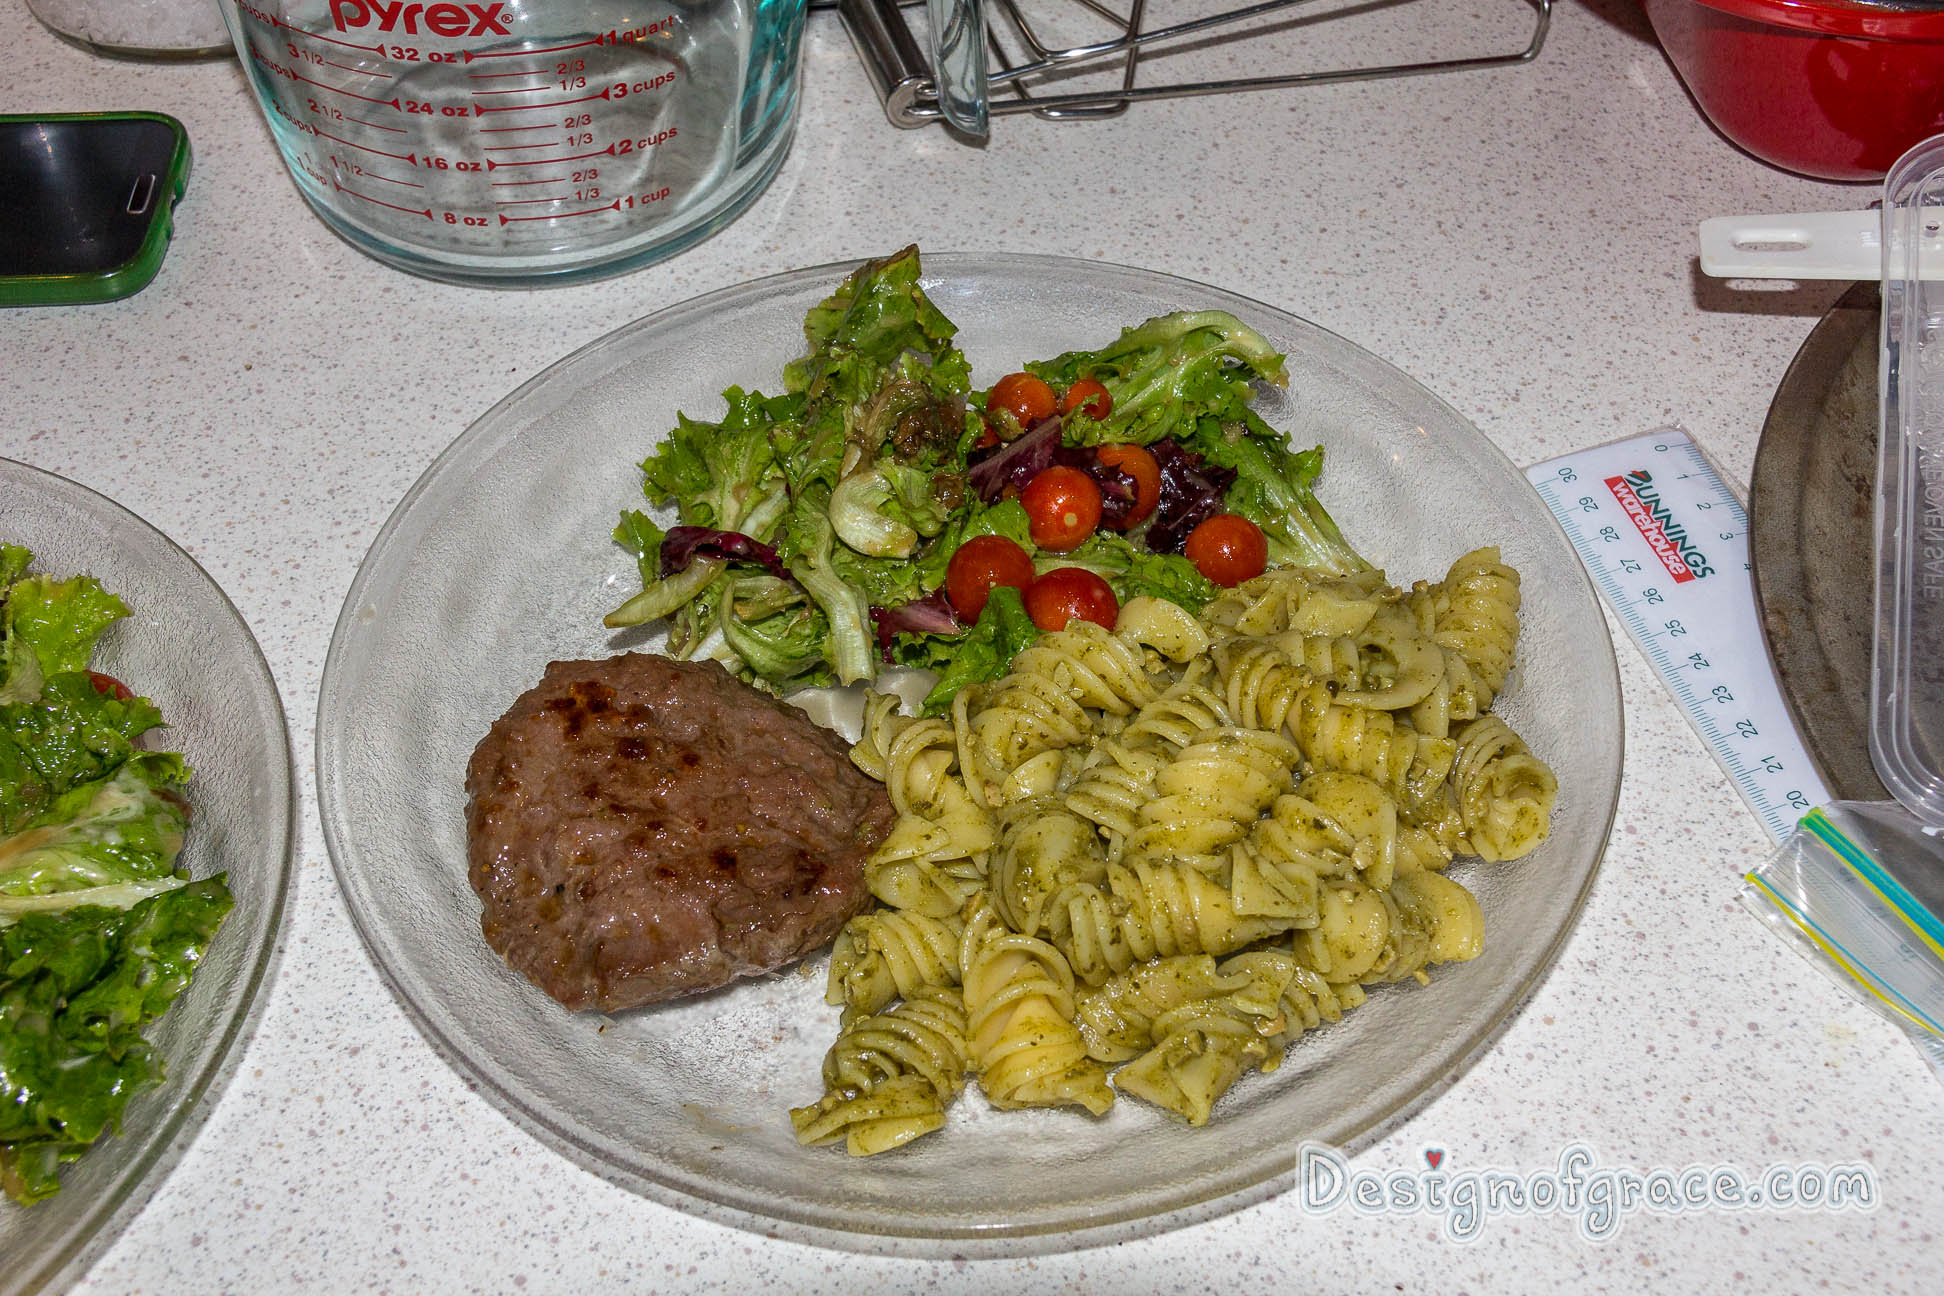 a plate of food with a kangaroo patty on the left which has been nicely browned with pesto pasta on the right and the home grown green and red lettuce and cherry tomatoes on top of the plate